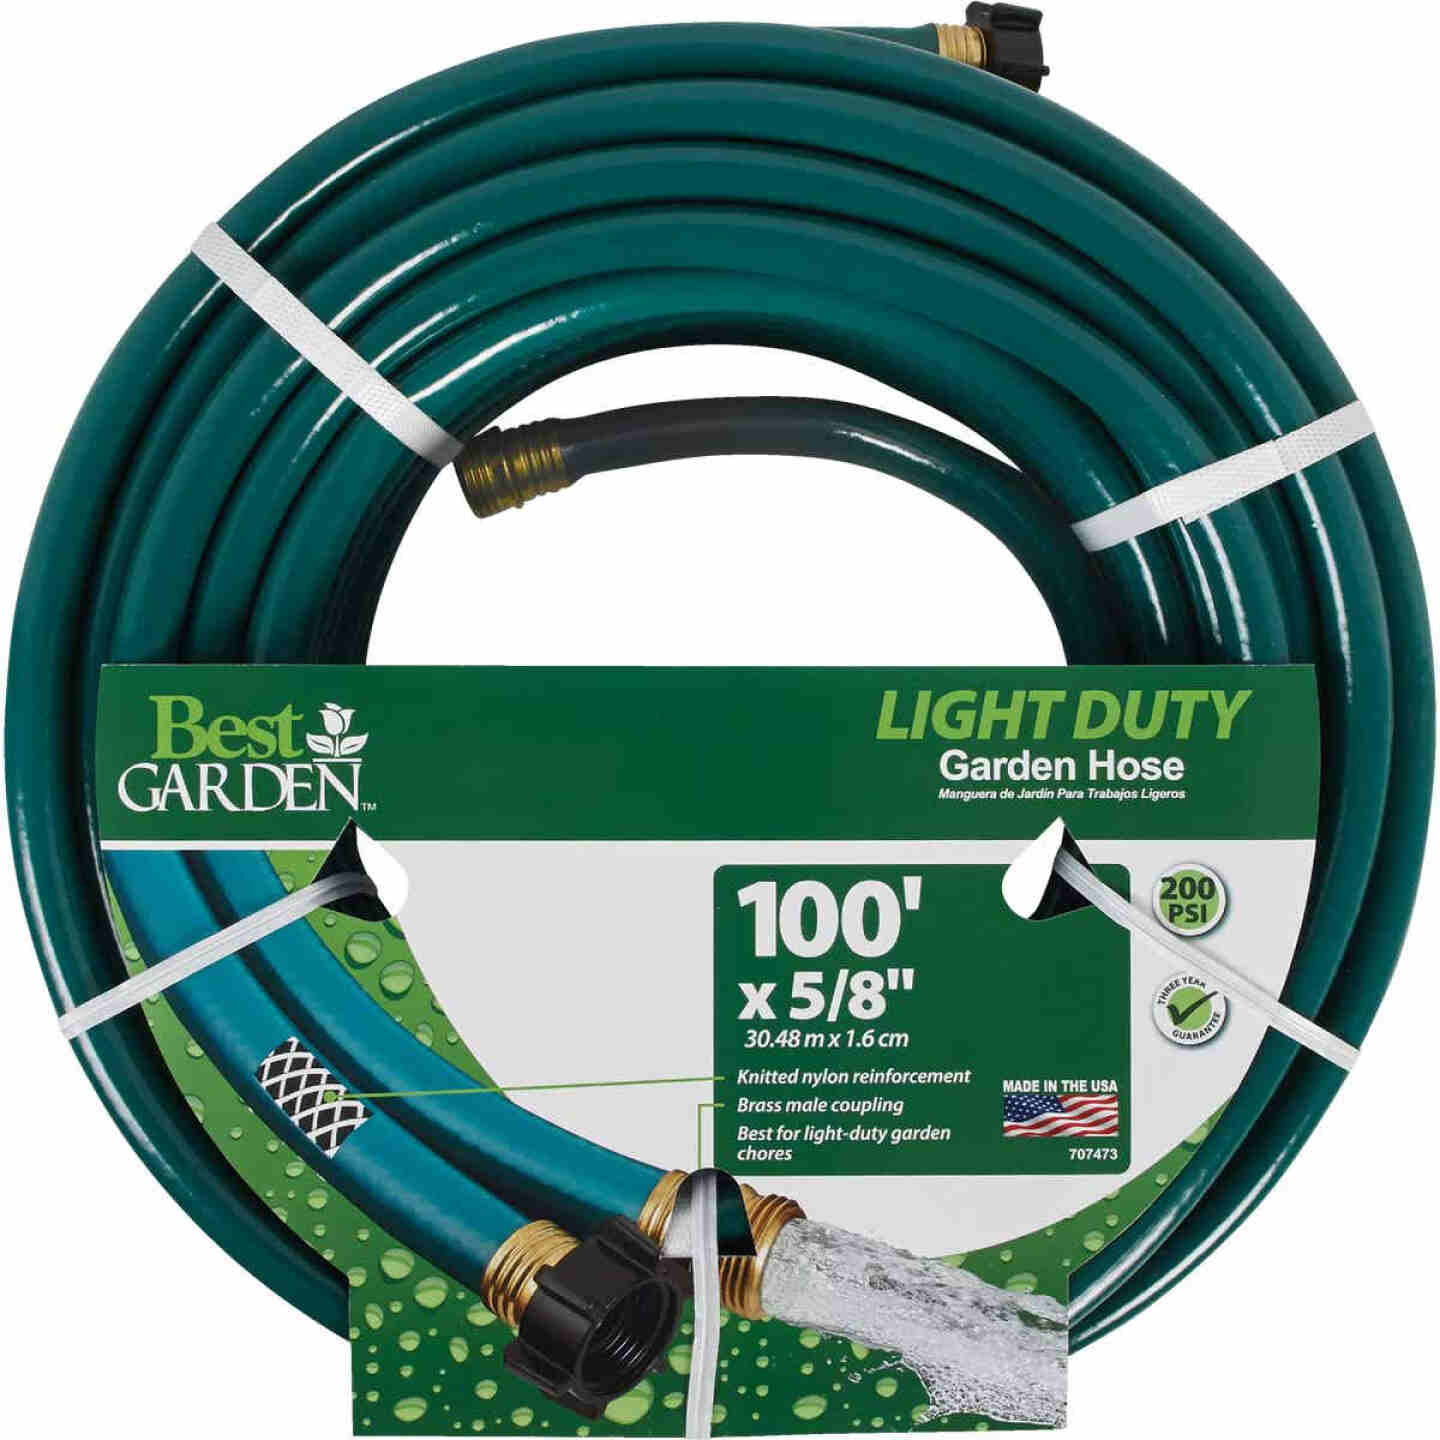 Best Garden 5/8 In. x Dia. 100 Ft. L. Light-Duty Garden Hose Image 1